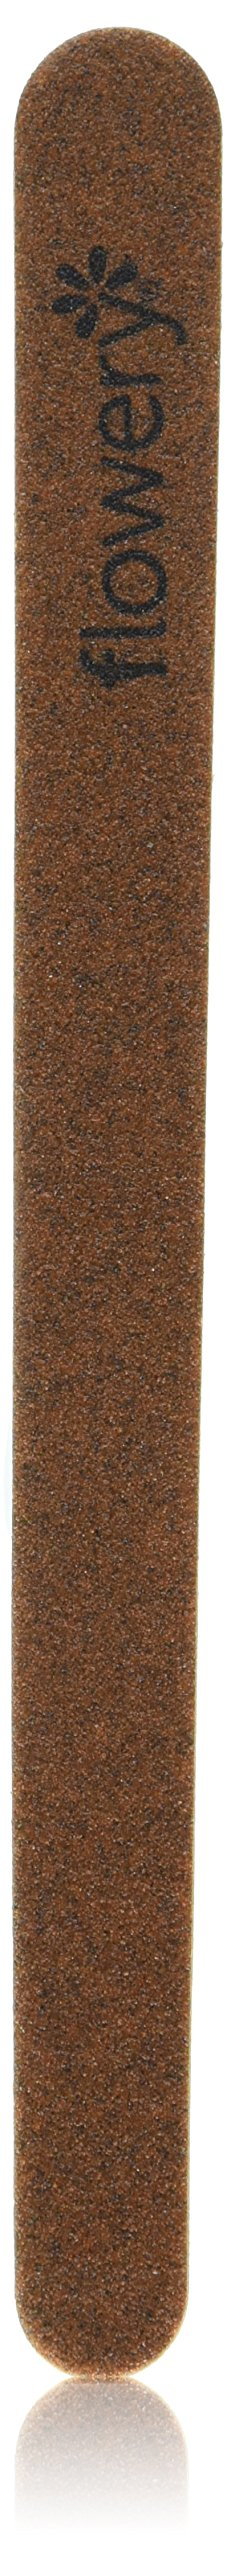 Flowery Wood Core Professional File Emery Board, 7 Inch, 500 Count